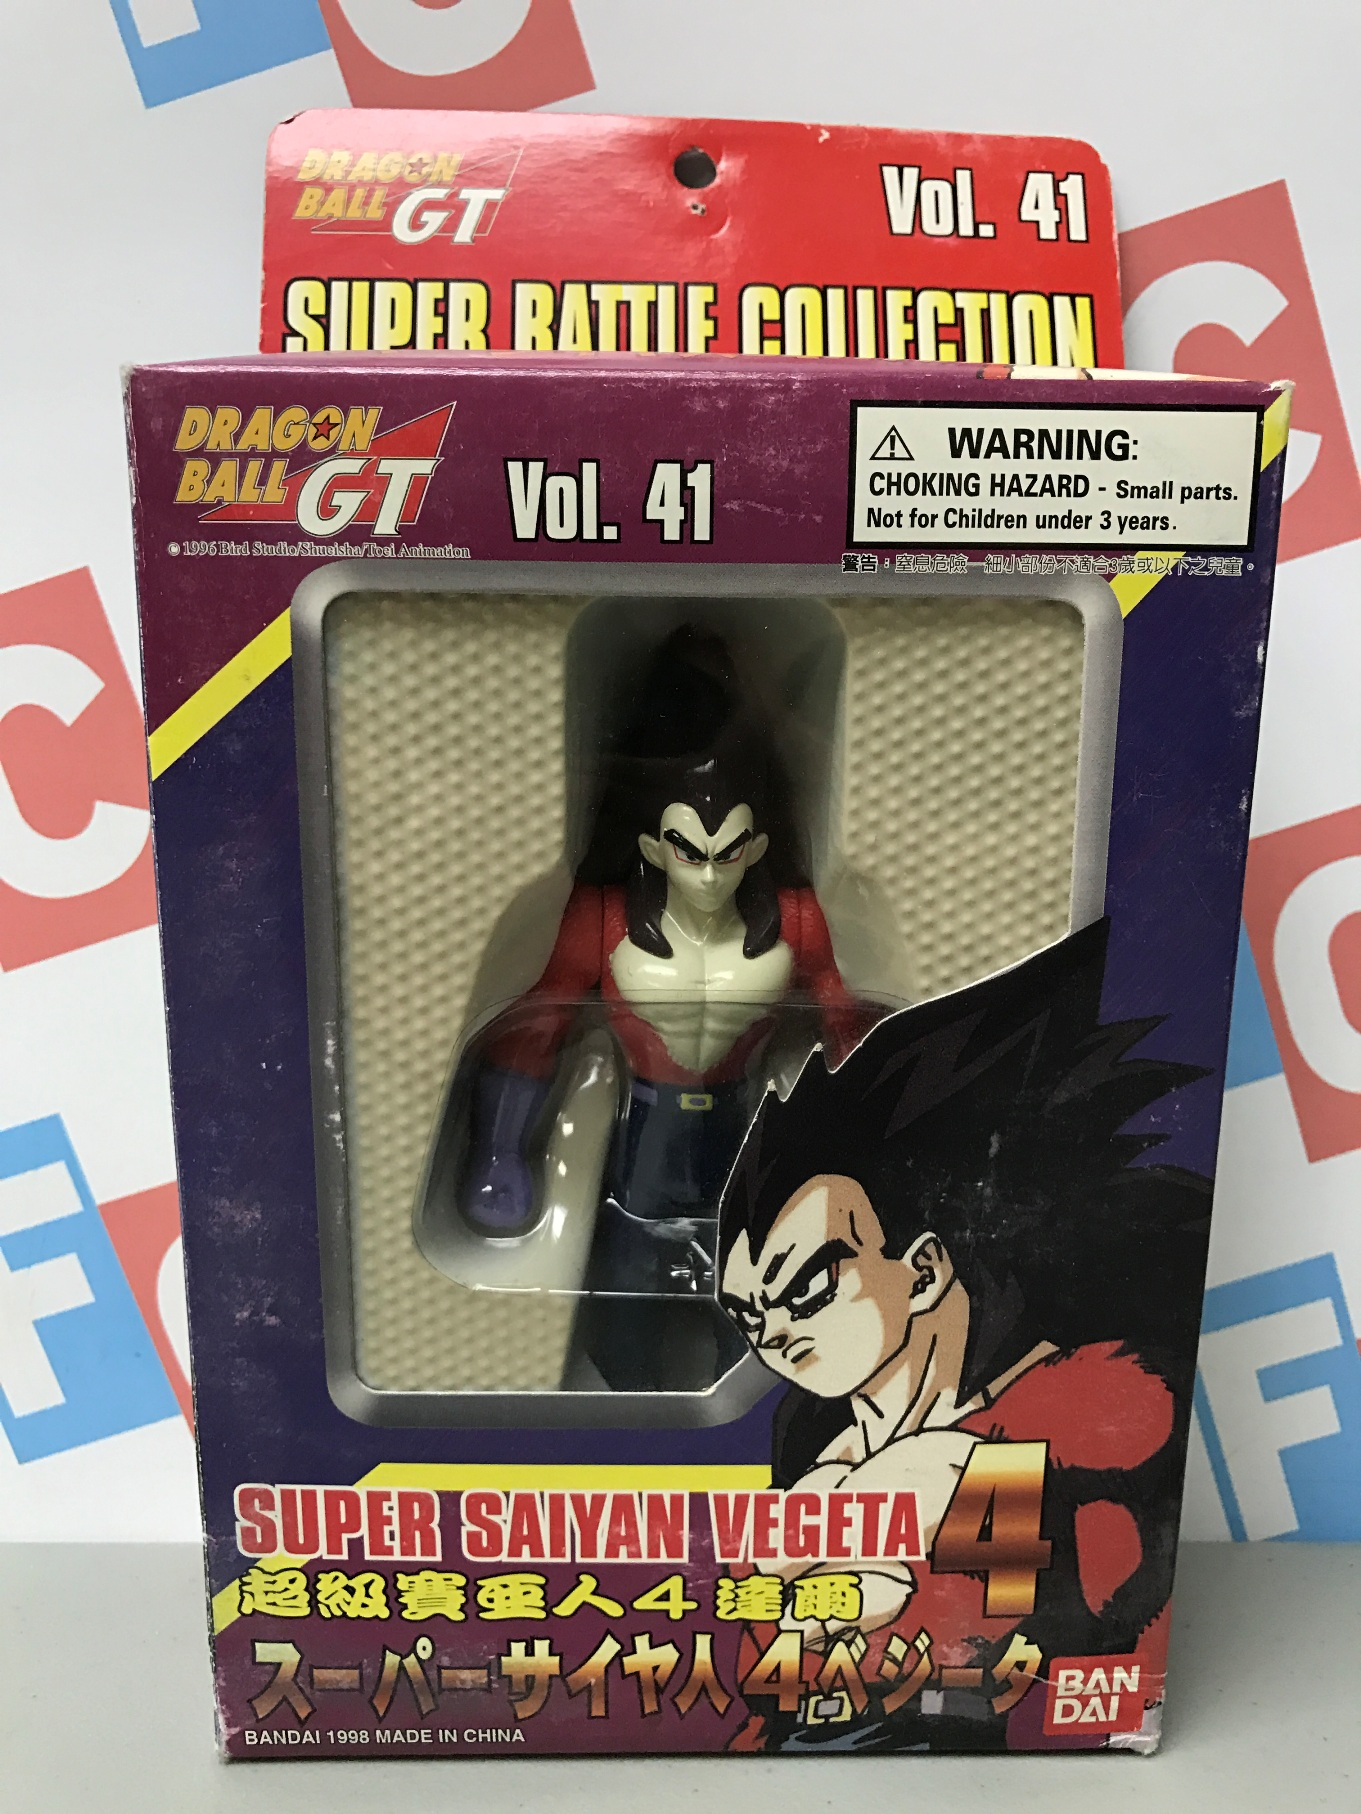 41: Super Saiyan 4 Vegeta (Alt. Box)